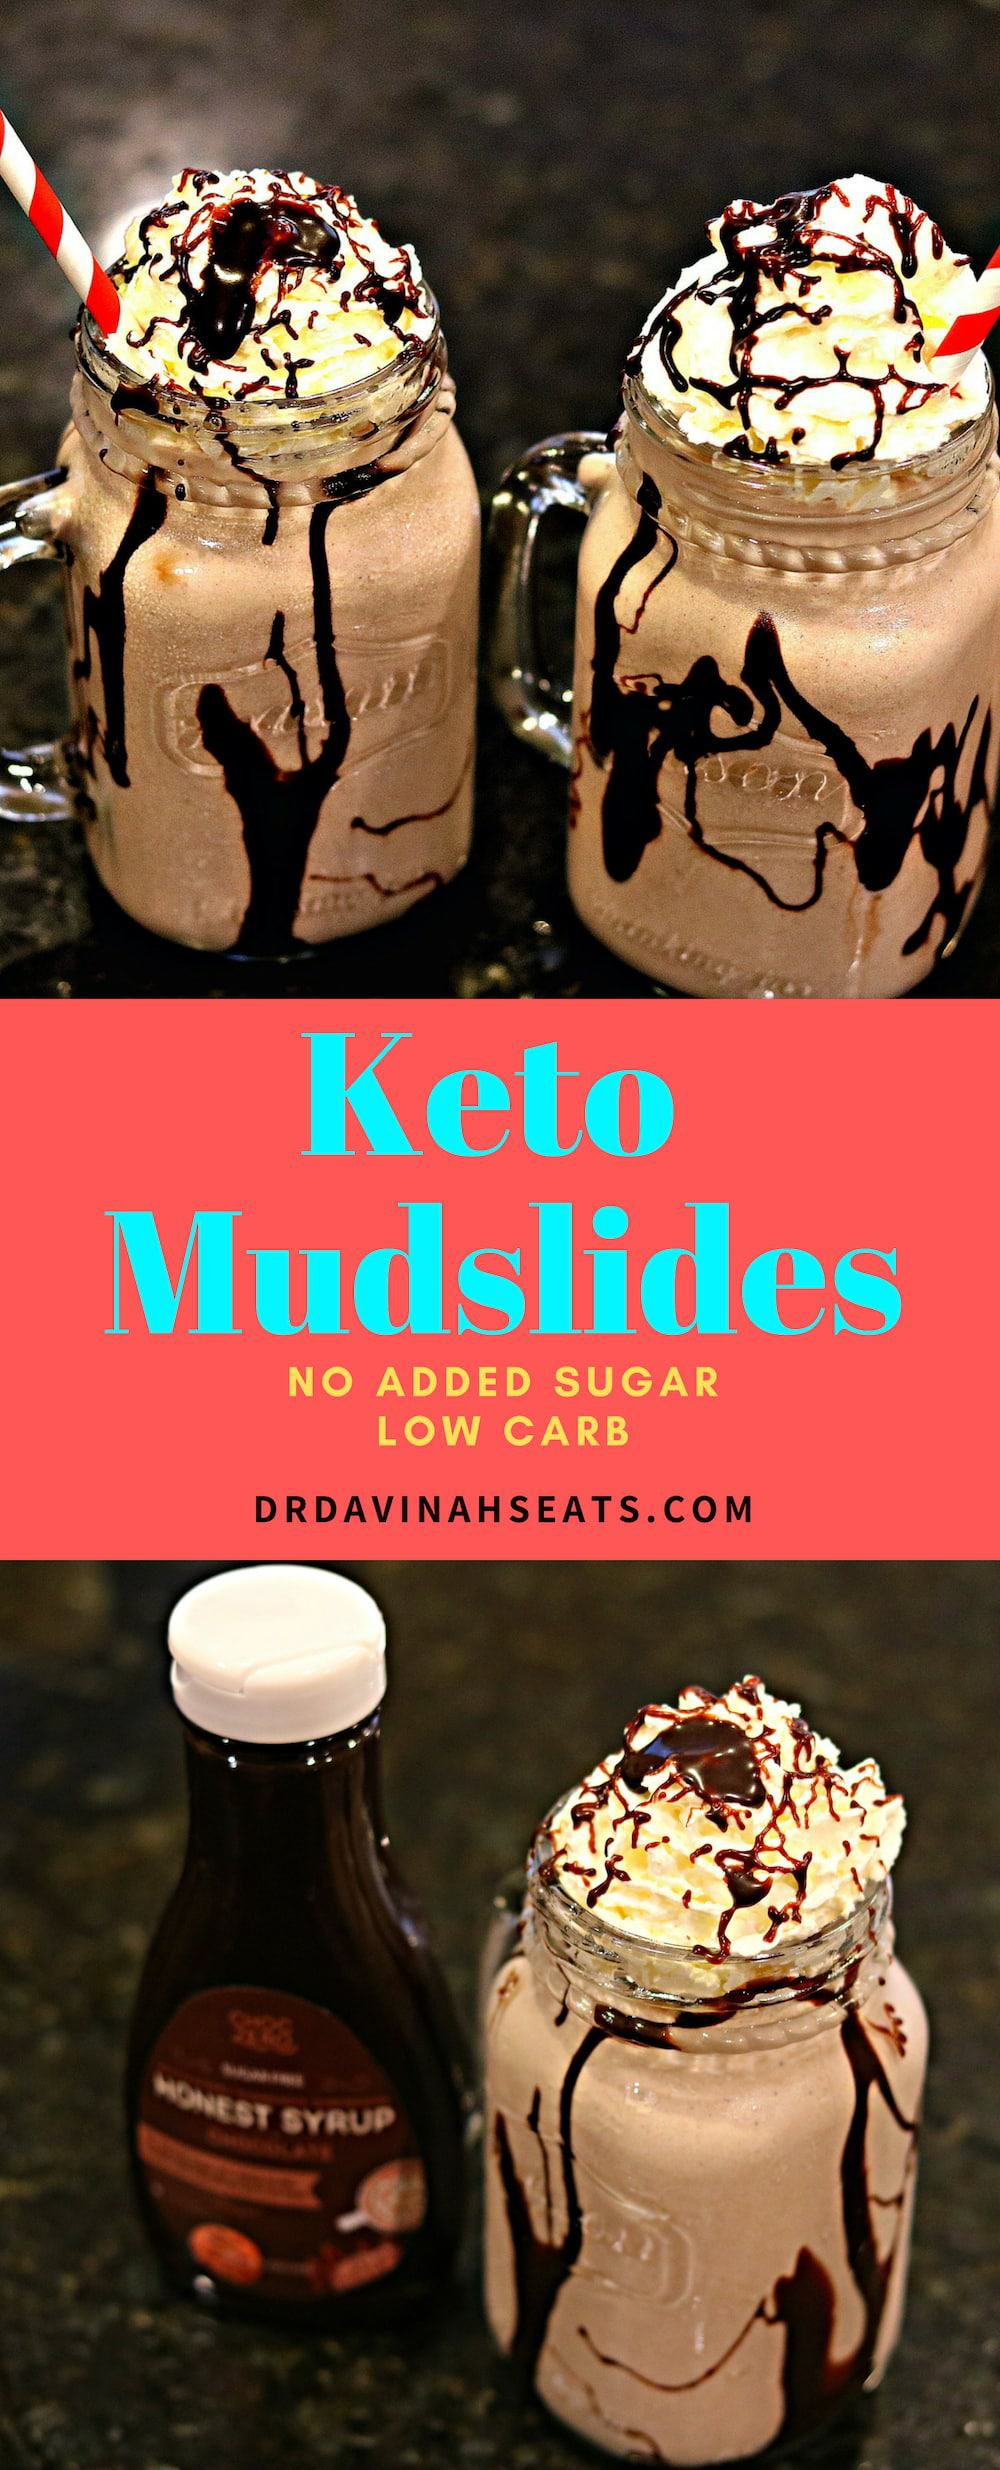 A keto-friendly and low carb remake to a mudslide drink that includes vanilla ice cream. This version has no sugar added and a rich chocolate taste. Tips to make an adult-only version are included. #keto #ketodrink #ketoshake #nosugaradded #ketodessert